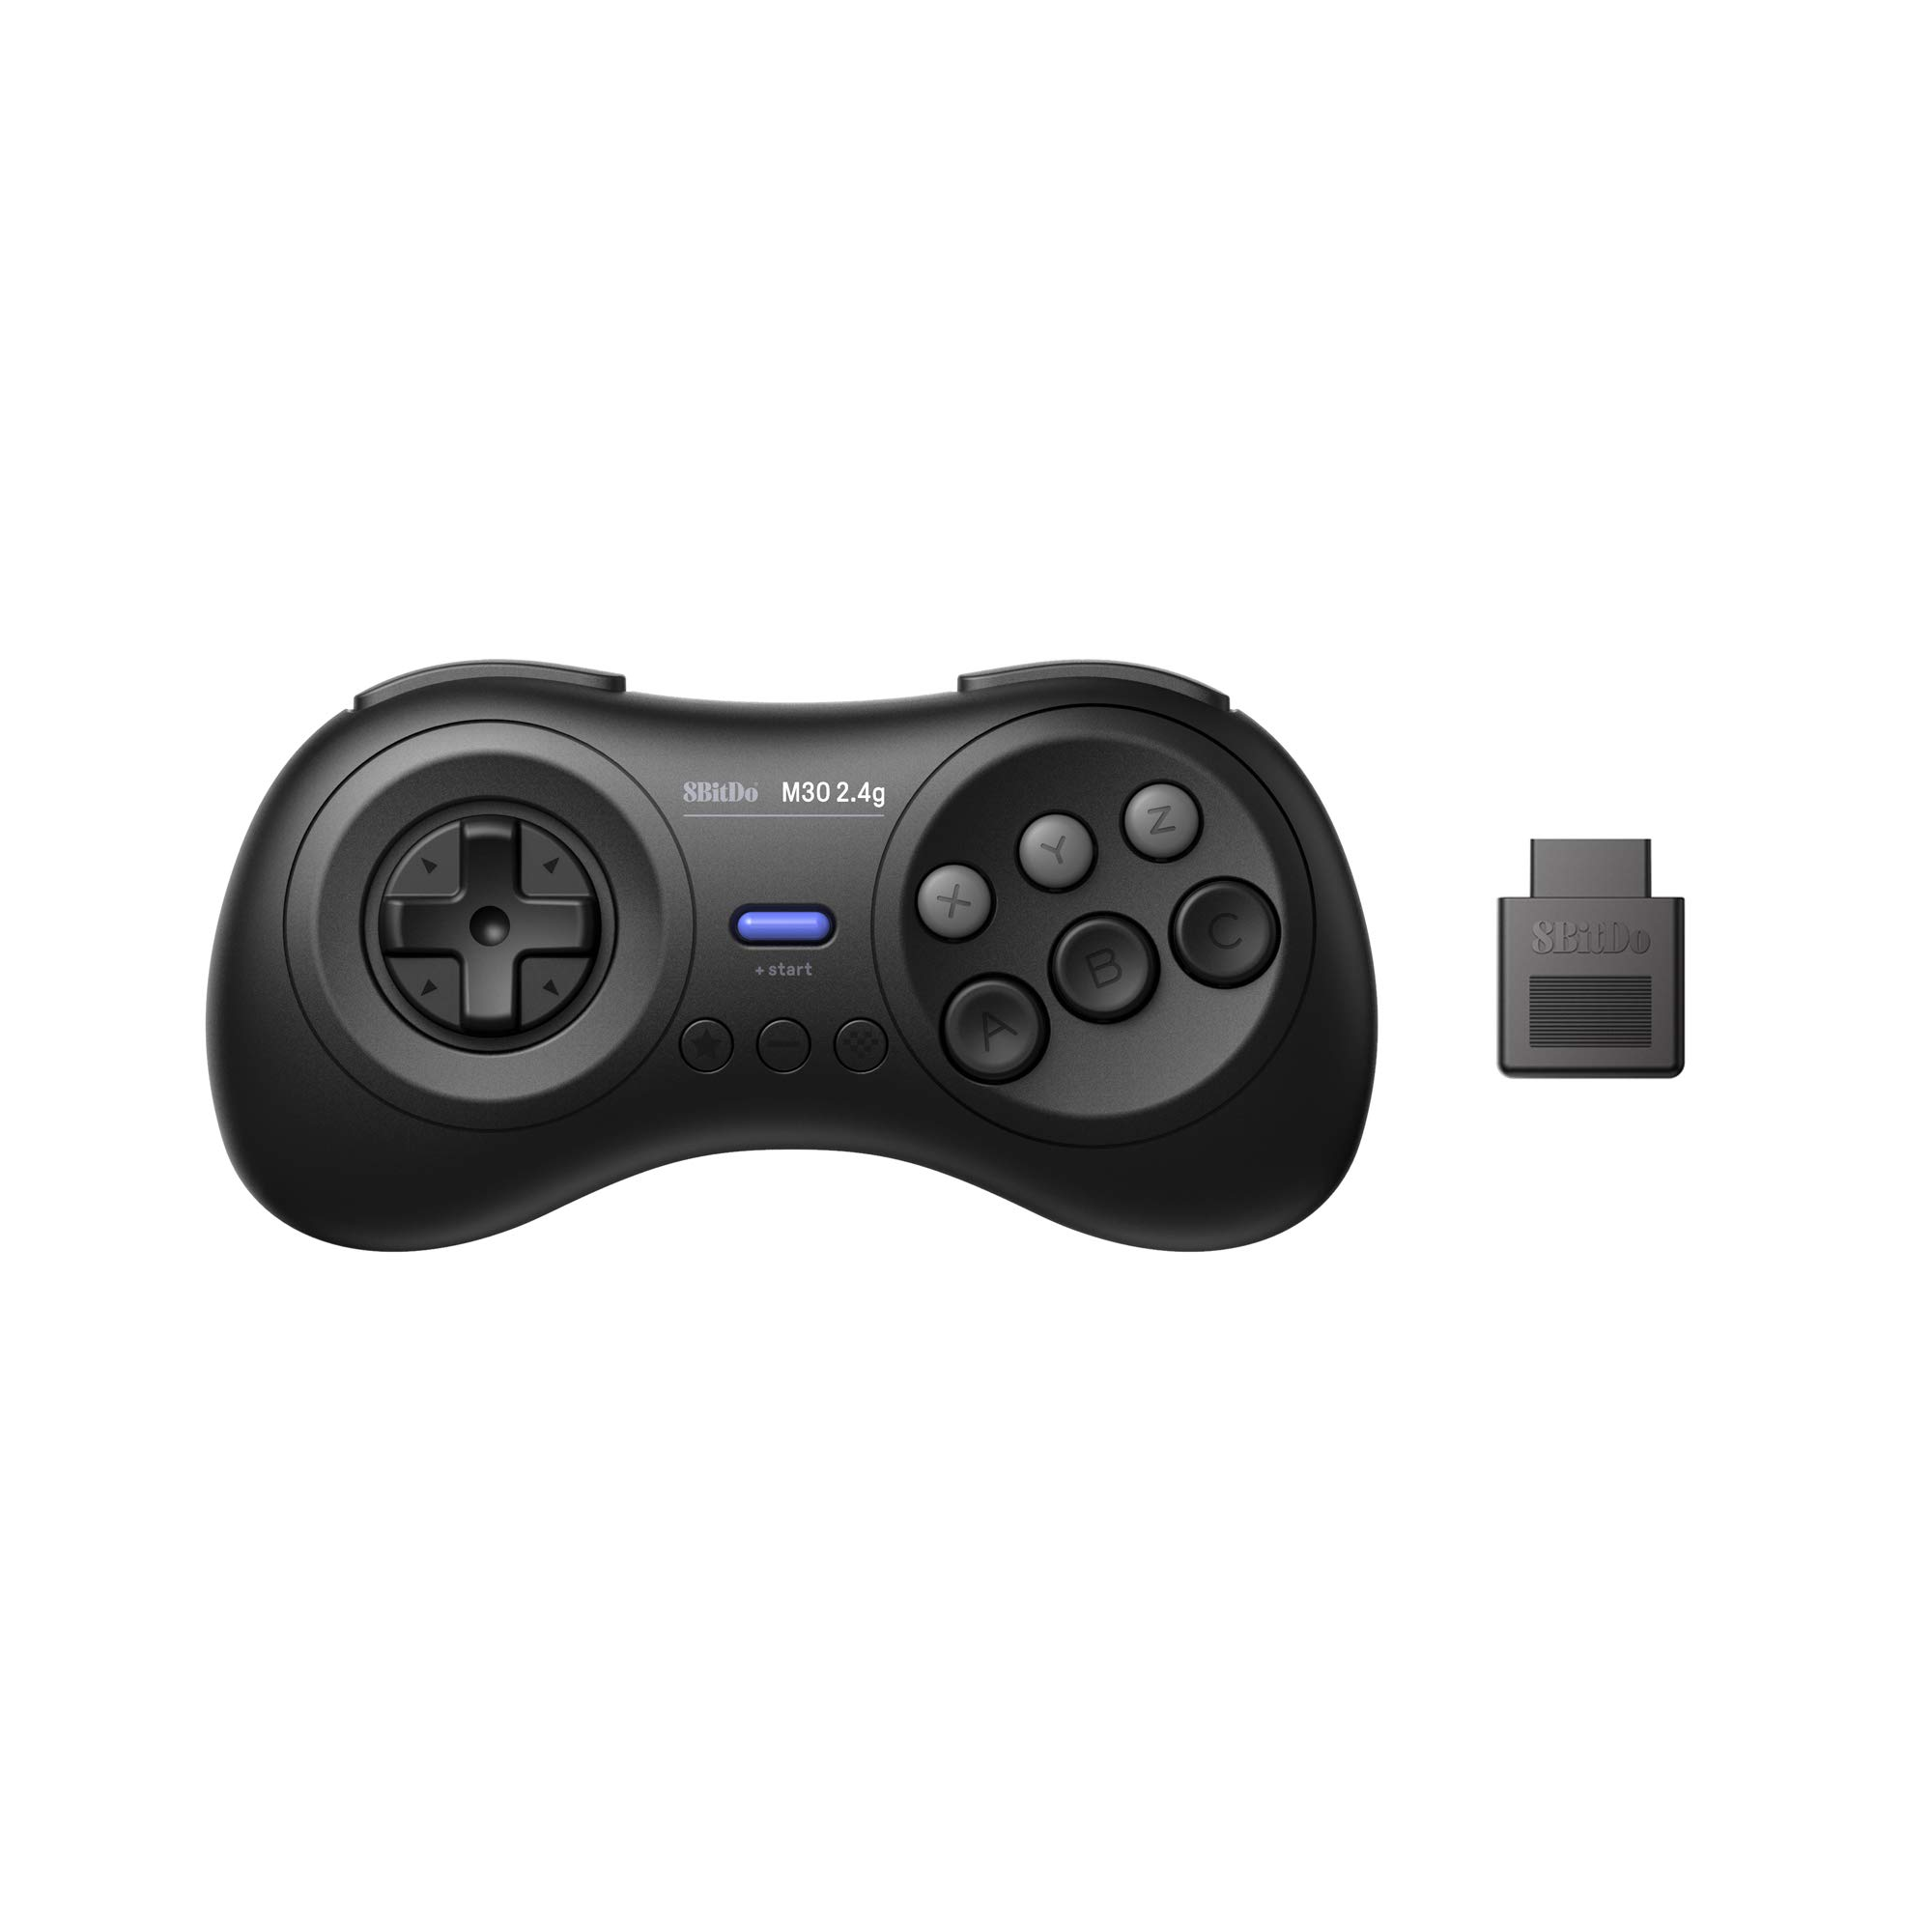 8Bitdo M30 2.4G Wireless Gamepad for the Original Sega Genesis and Sega Mega Drive - Sega Genesis,Black by 8Bitdo (Image #2)